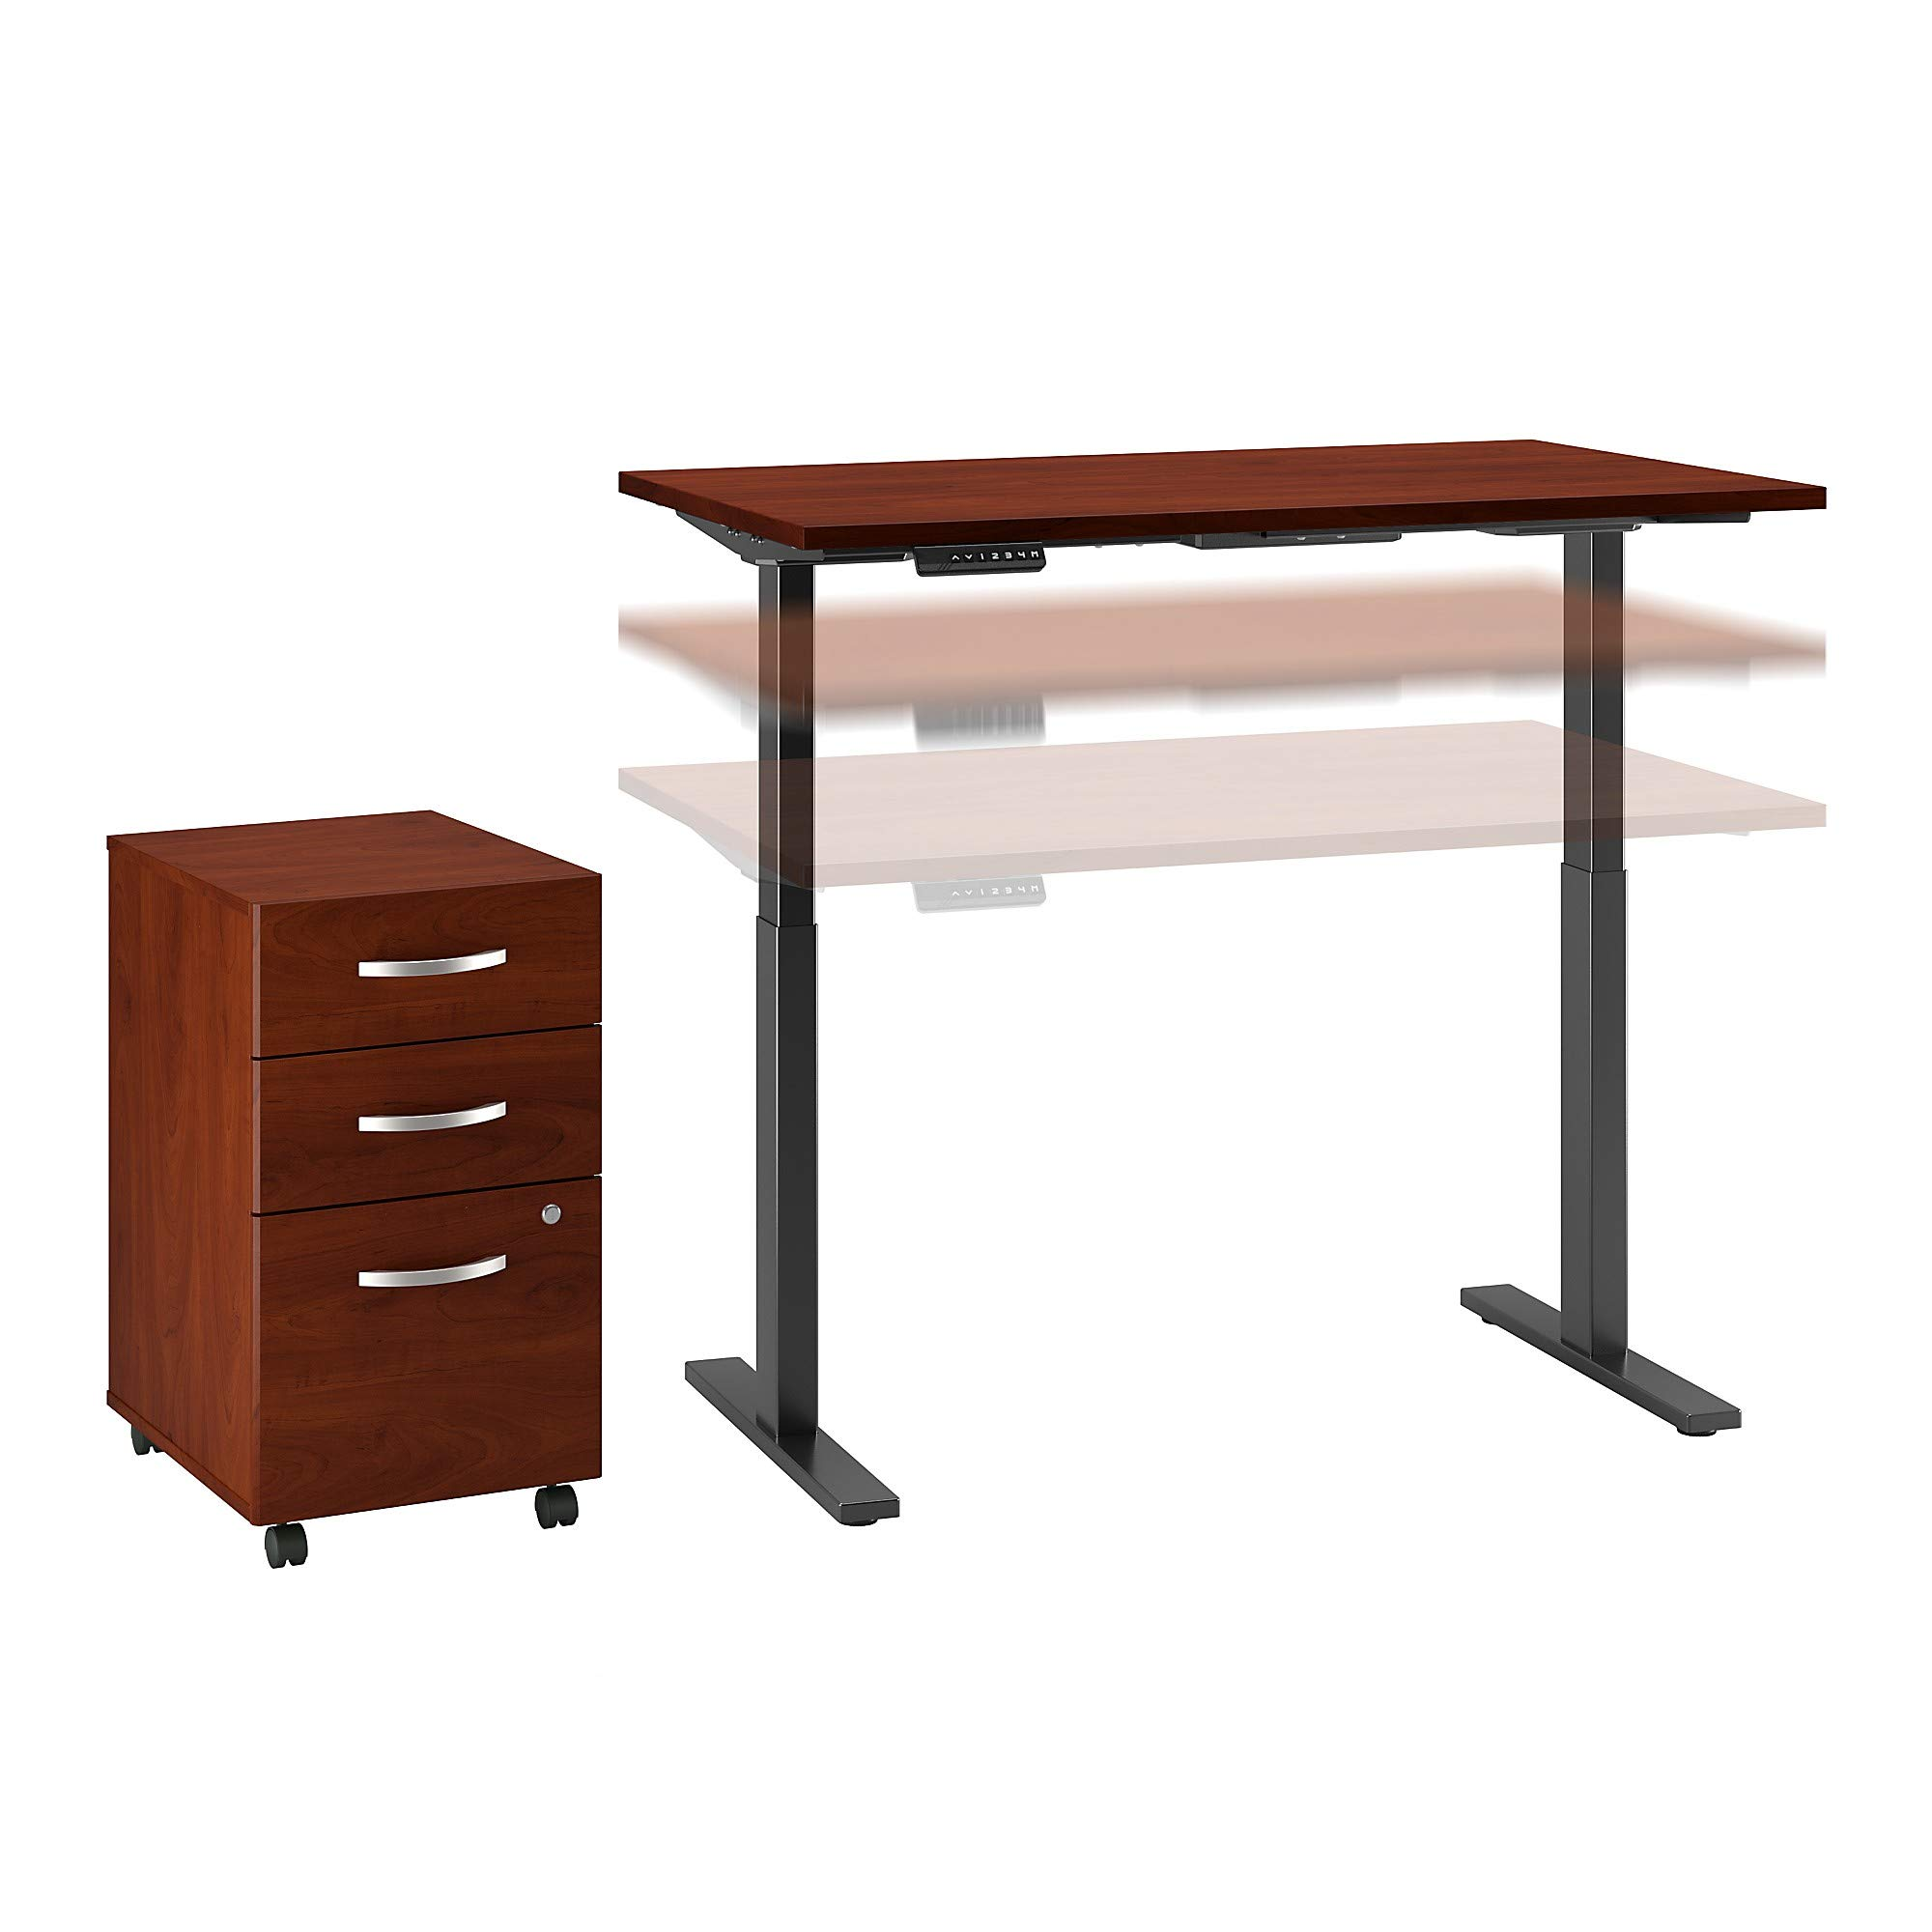 Move 60 Series 48W x 30D Height Adjustable Standing Desk with Storage in Hansen Cherry with Black Base